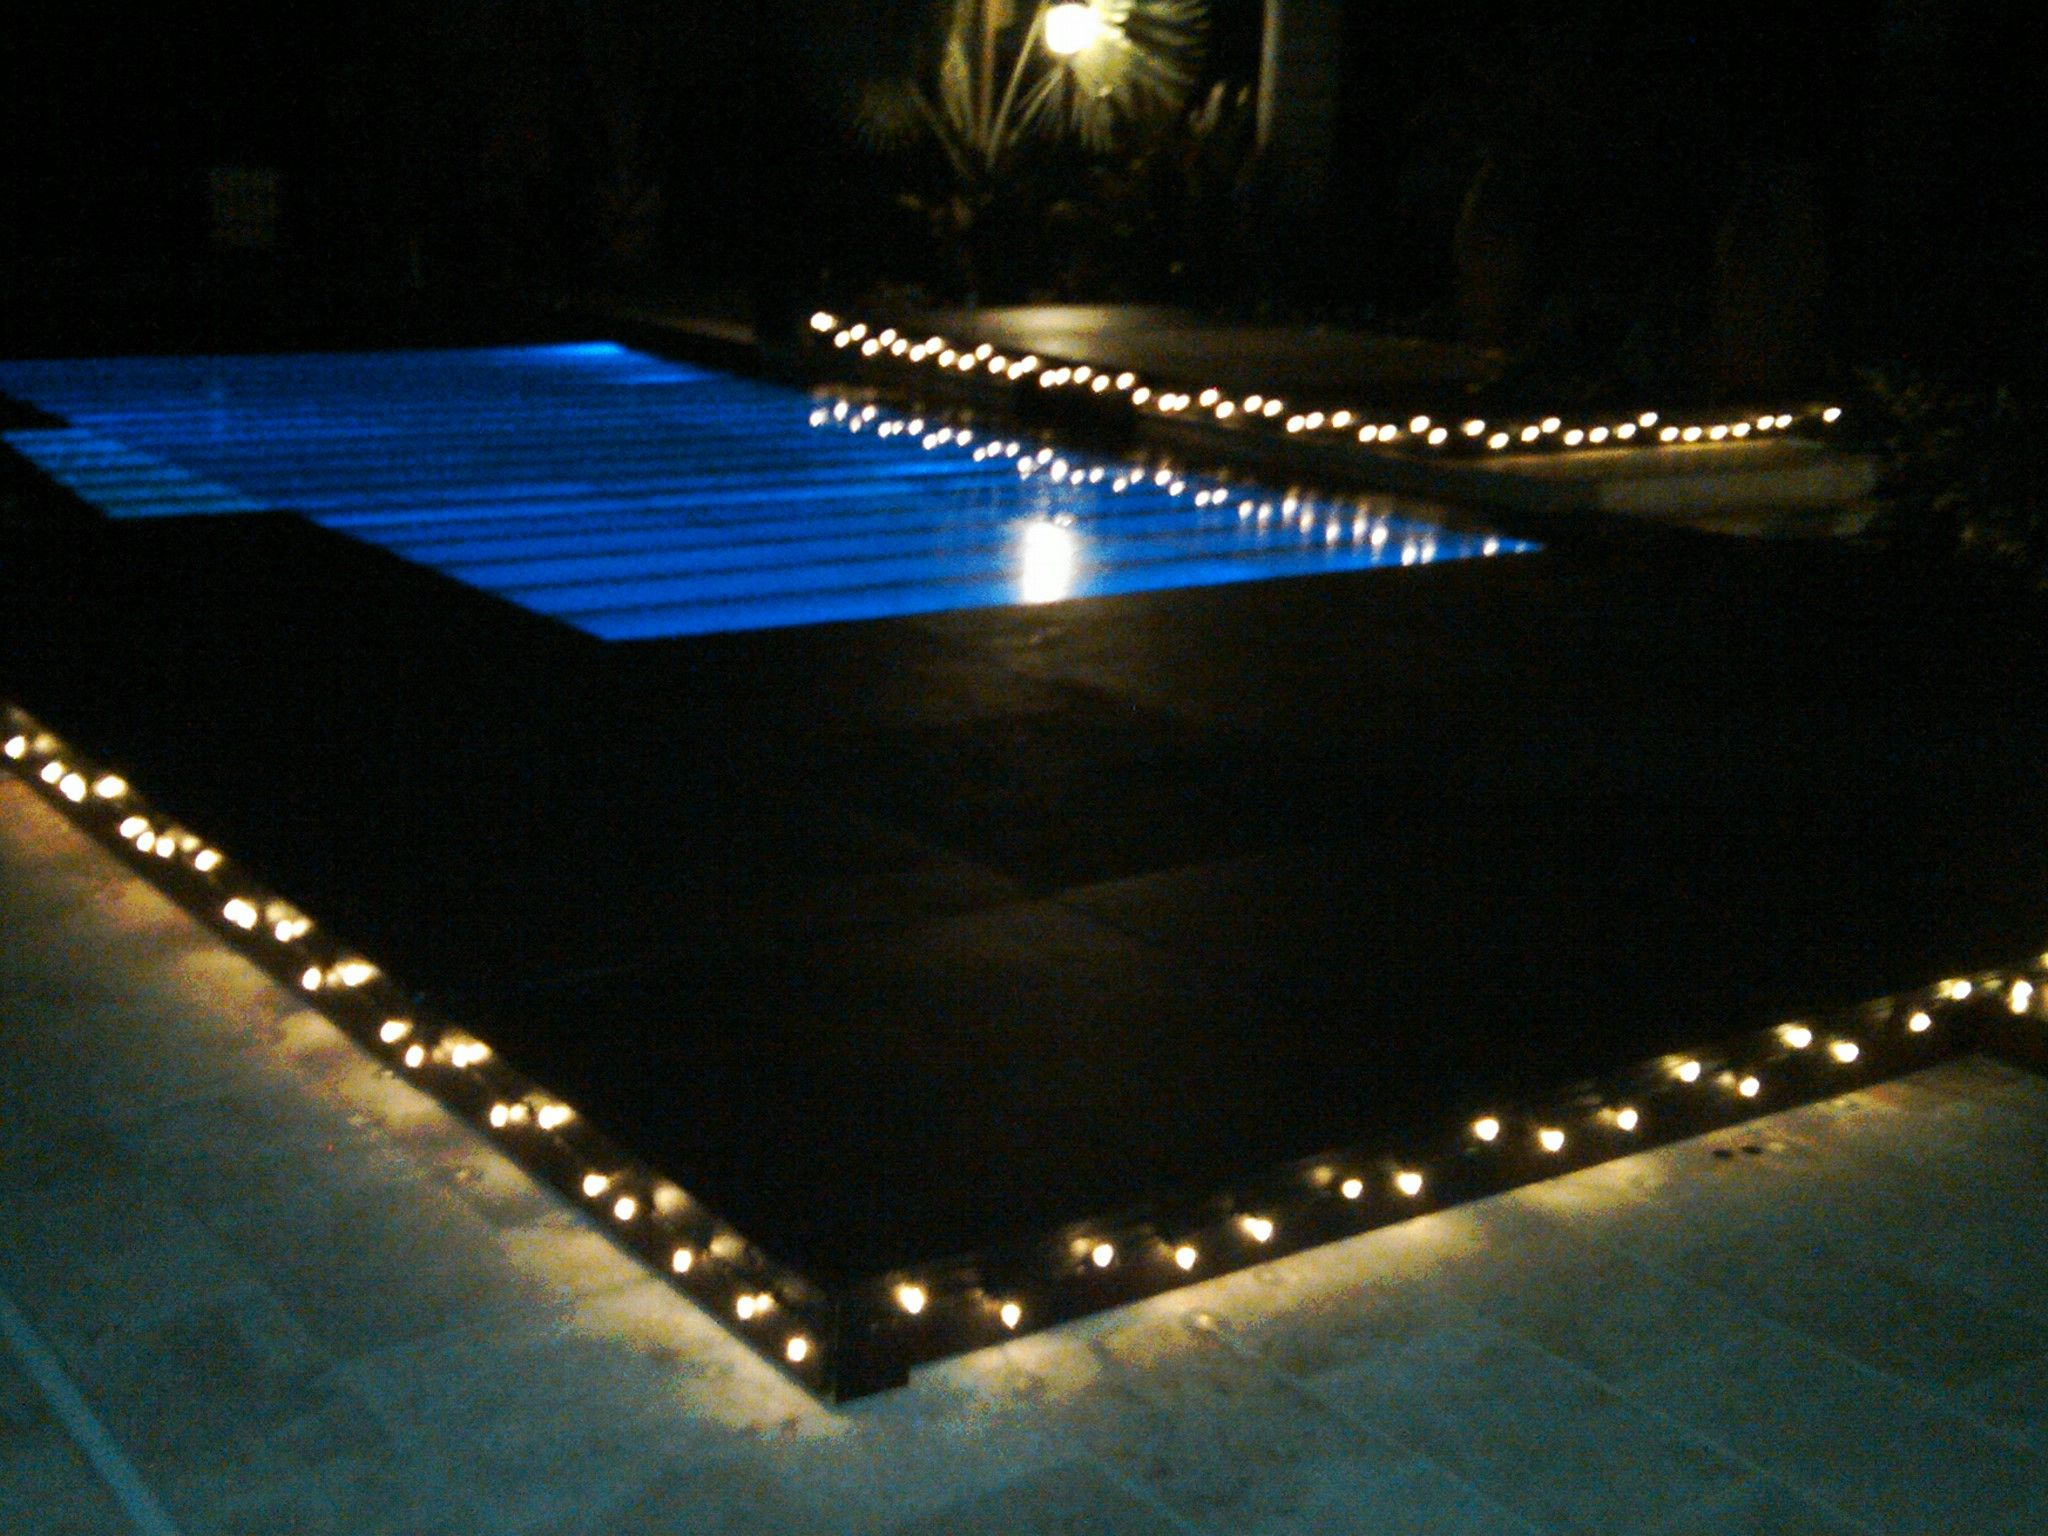 Pool cover dance floor If the in ground pool is done by then